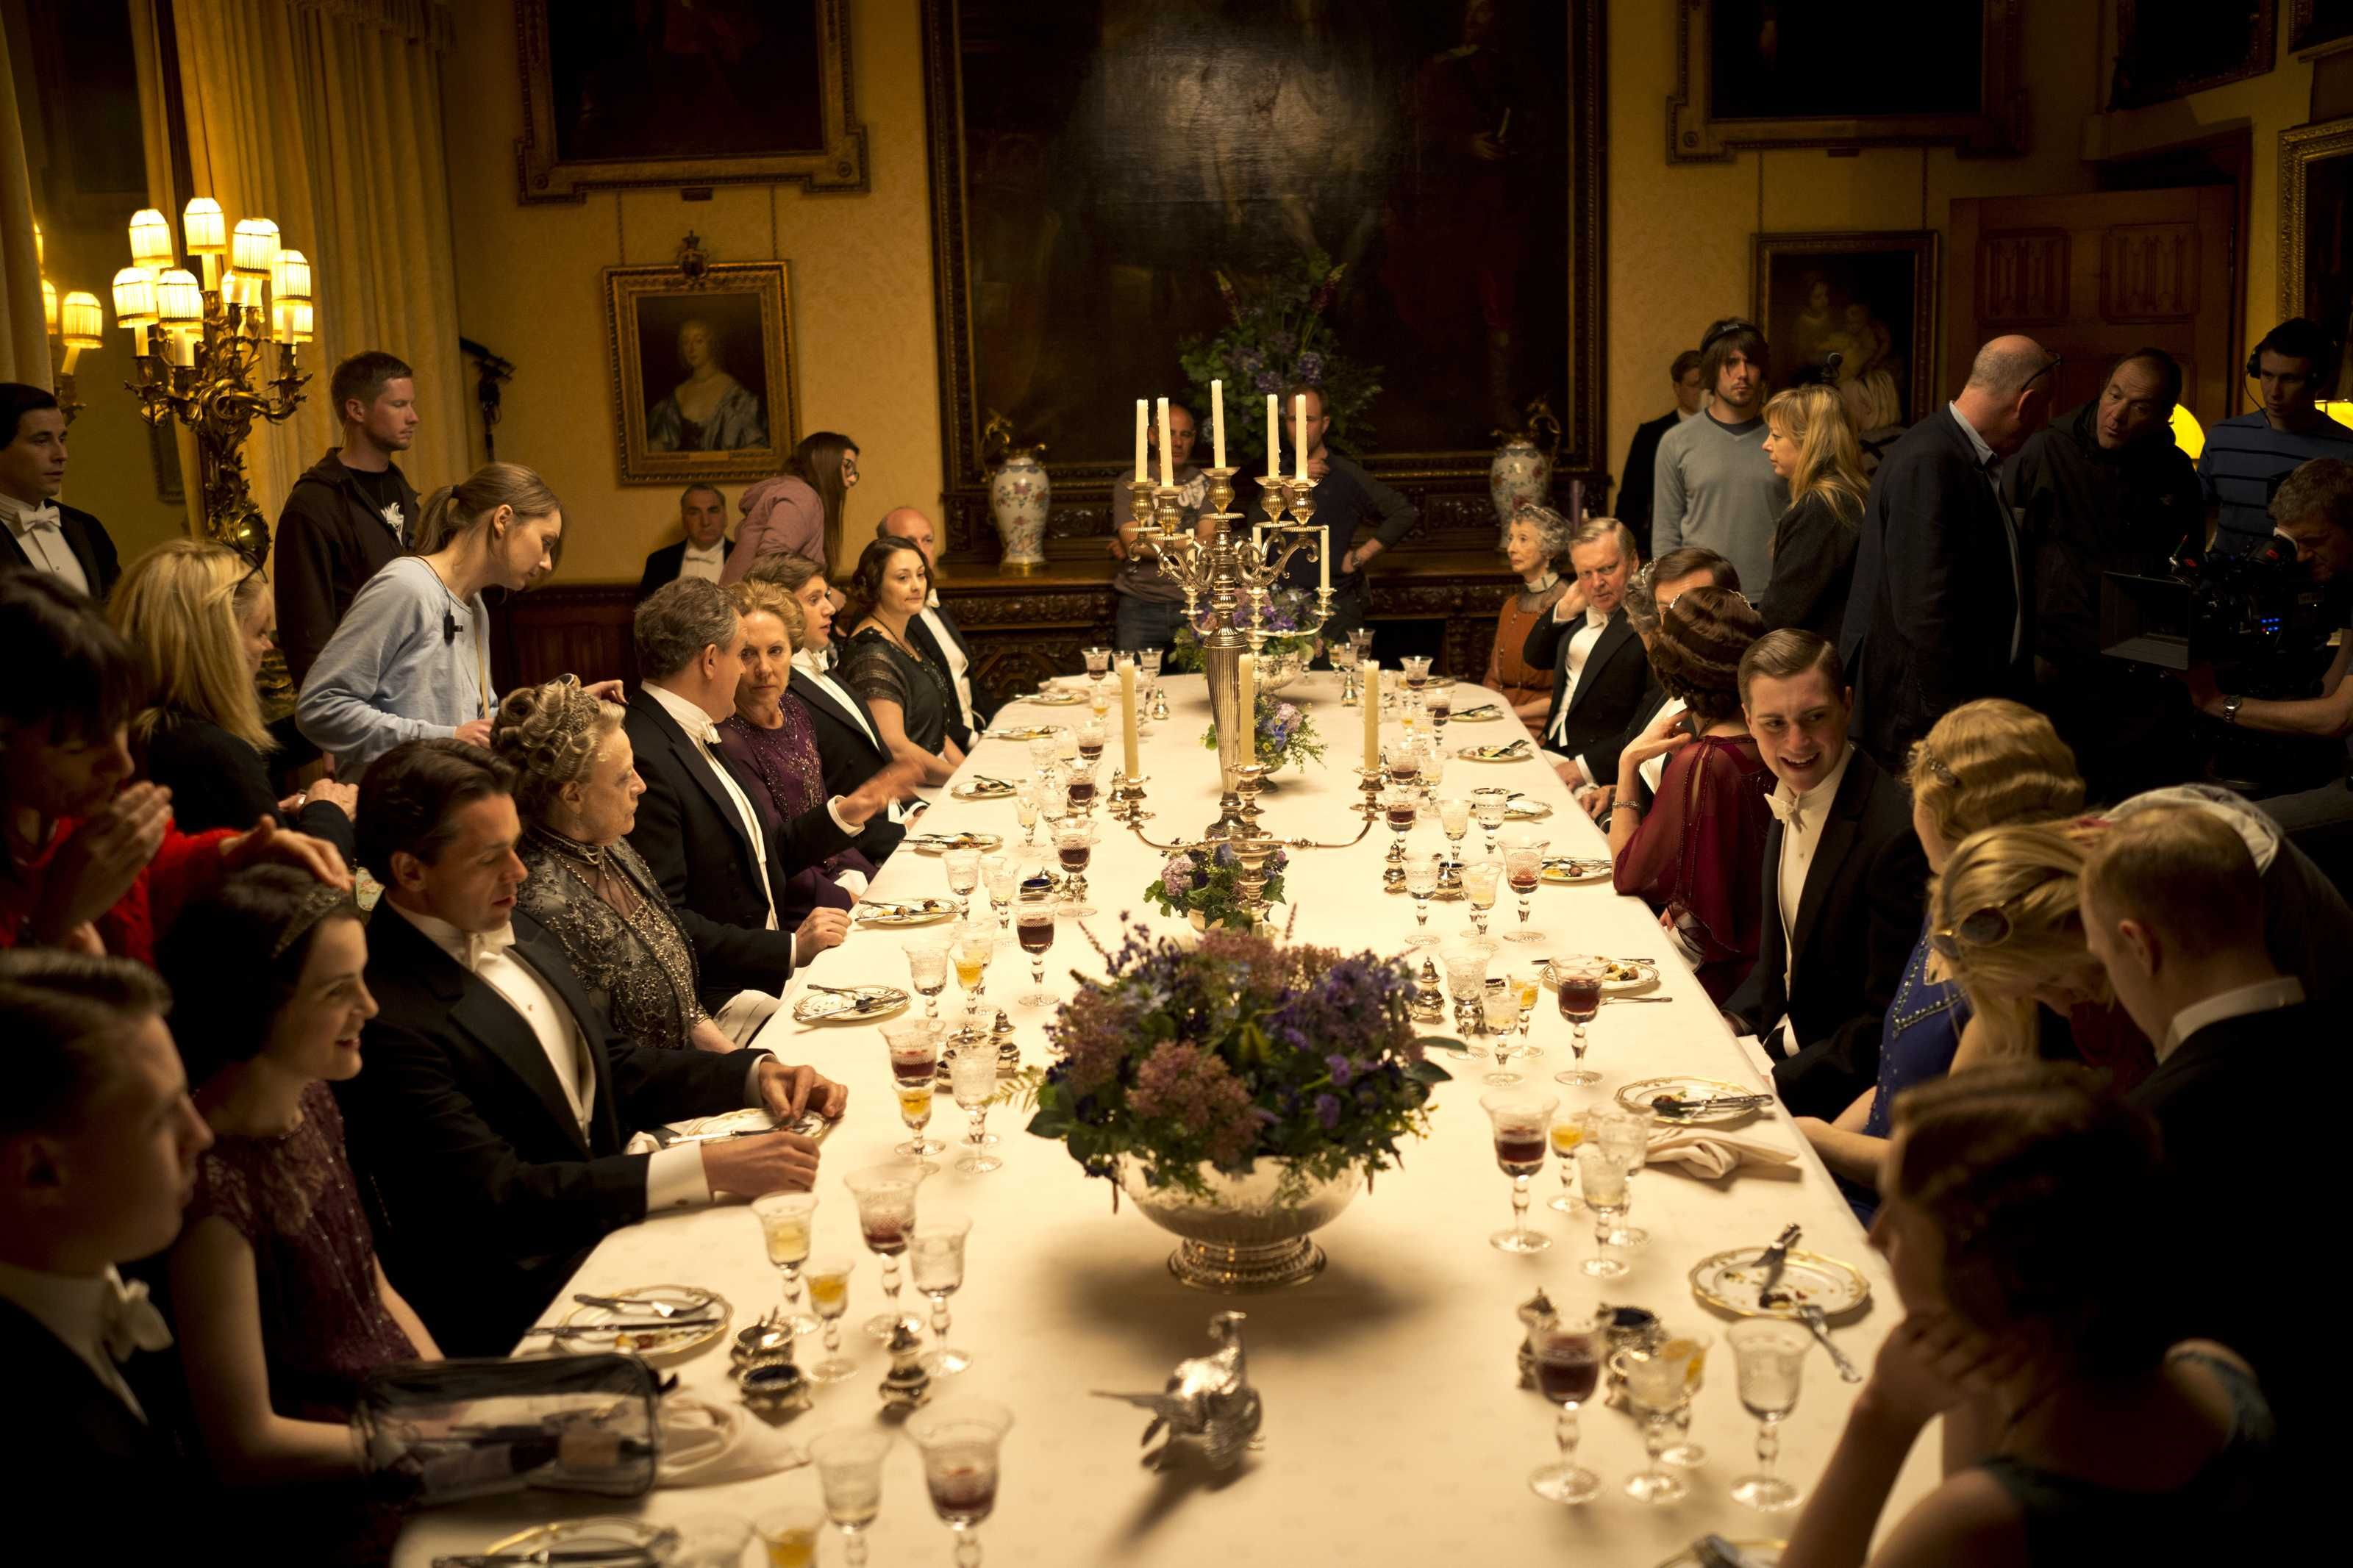 Heroes At Highclere Experience The Real Downton Abbey  Room Fair Highclere Castle Dining Room 2018